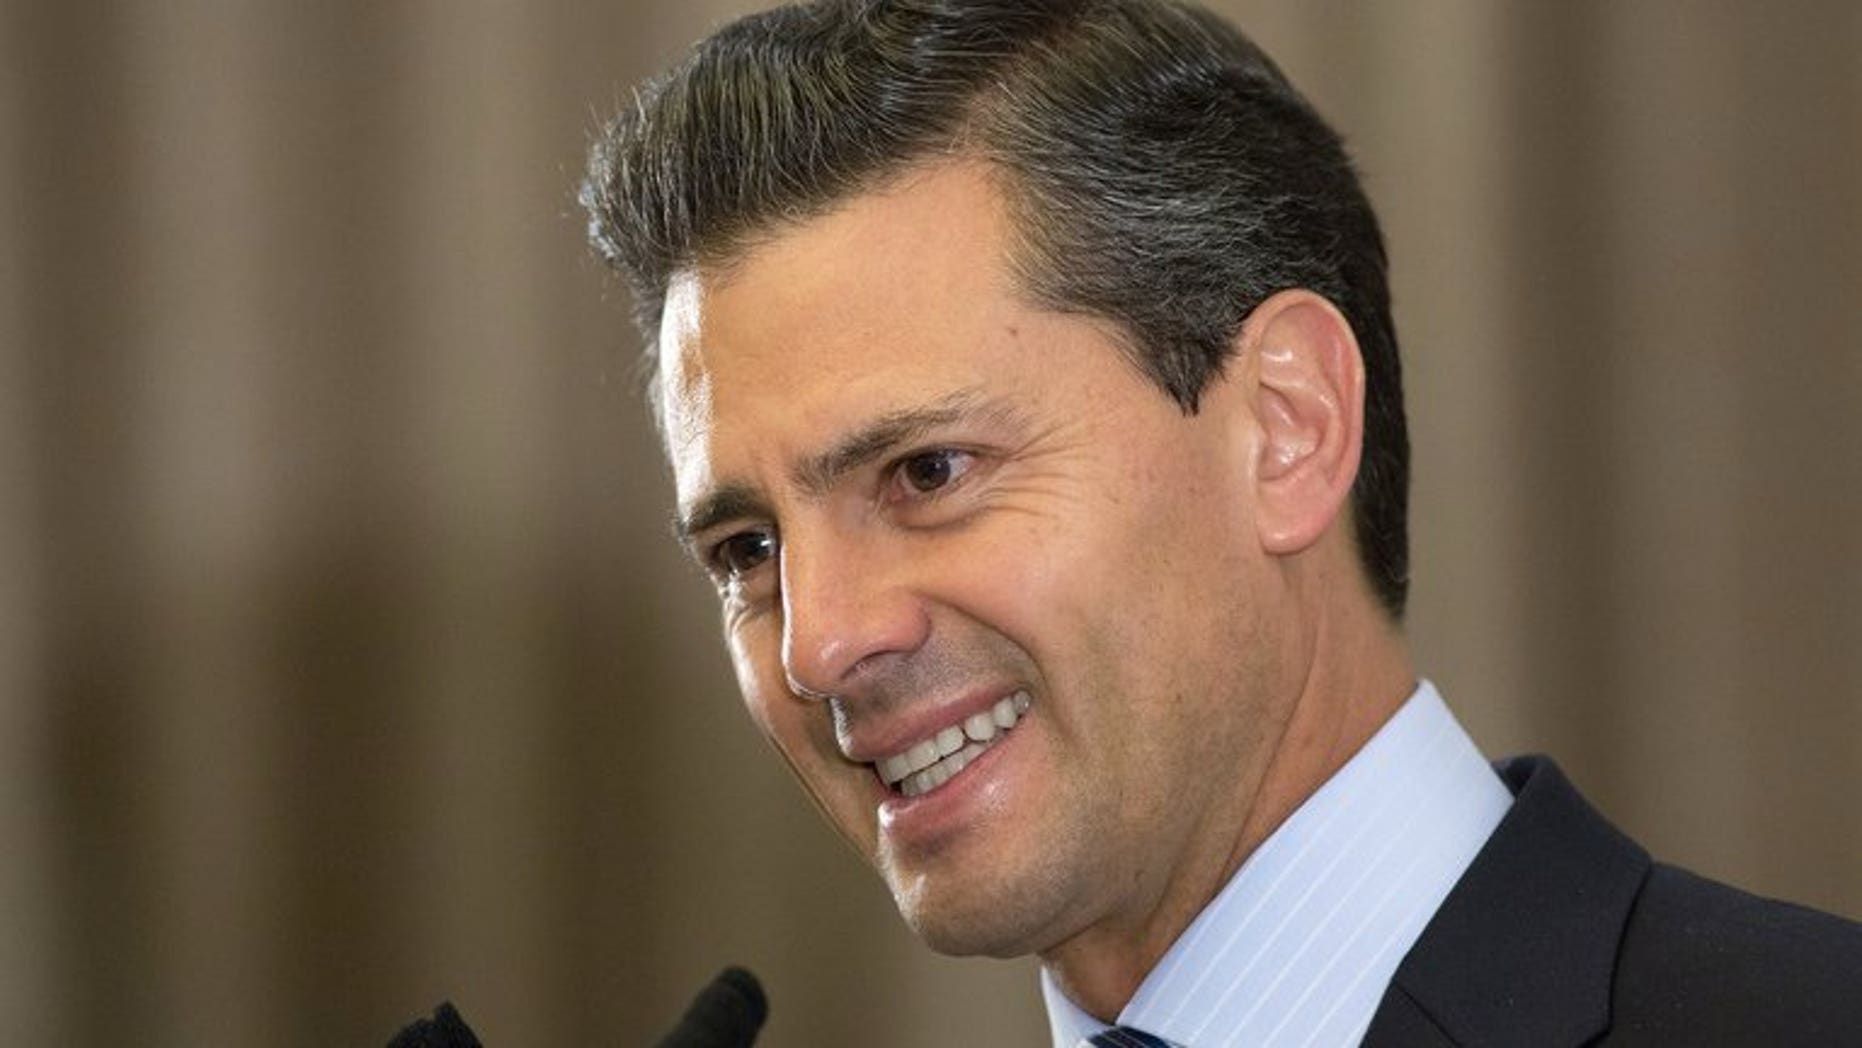 Mexican President Enrique Pena Nieto speaks during a press conference in Central London on June 18, 2013. Nieto left hospital Saturday saying he felt fine after undergoing surgery to remove a thyroid nodule and he hoped to fully return to work next week.